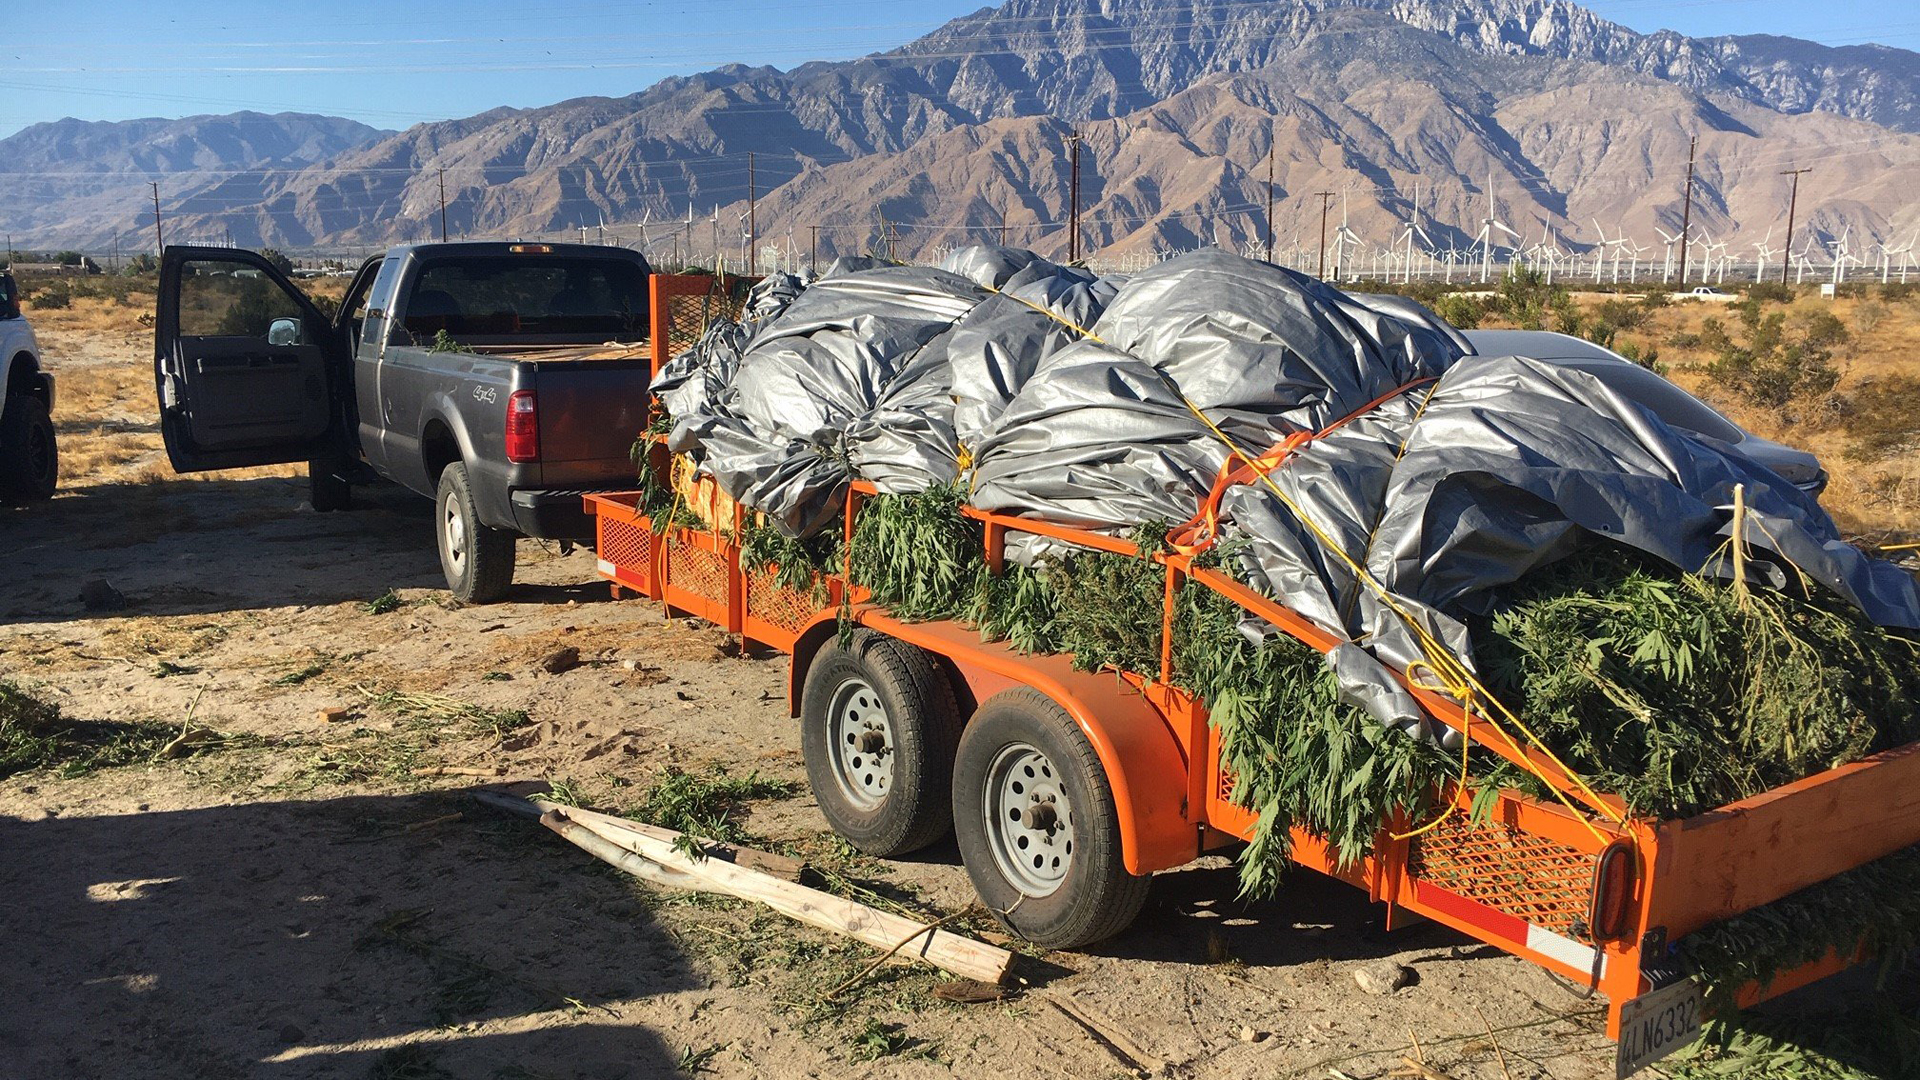 Investigators haul away about 1,200 marijuana plants after raiding an illegal grow site in North Palm Springs on Sept. 19, 2019. (Credit: Riverside County District Attorney's Office)